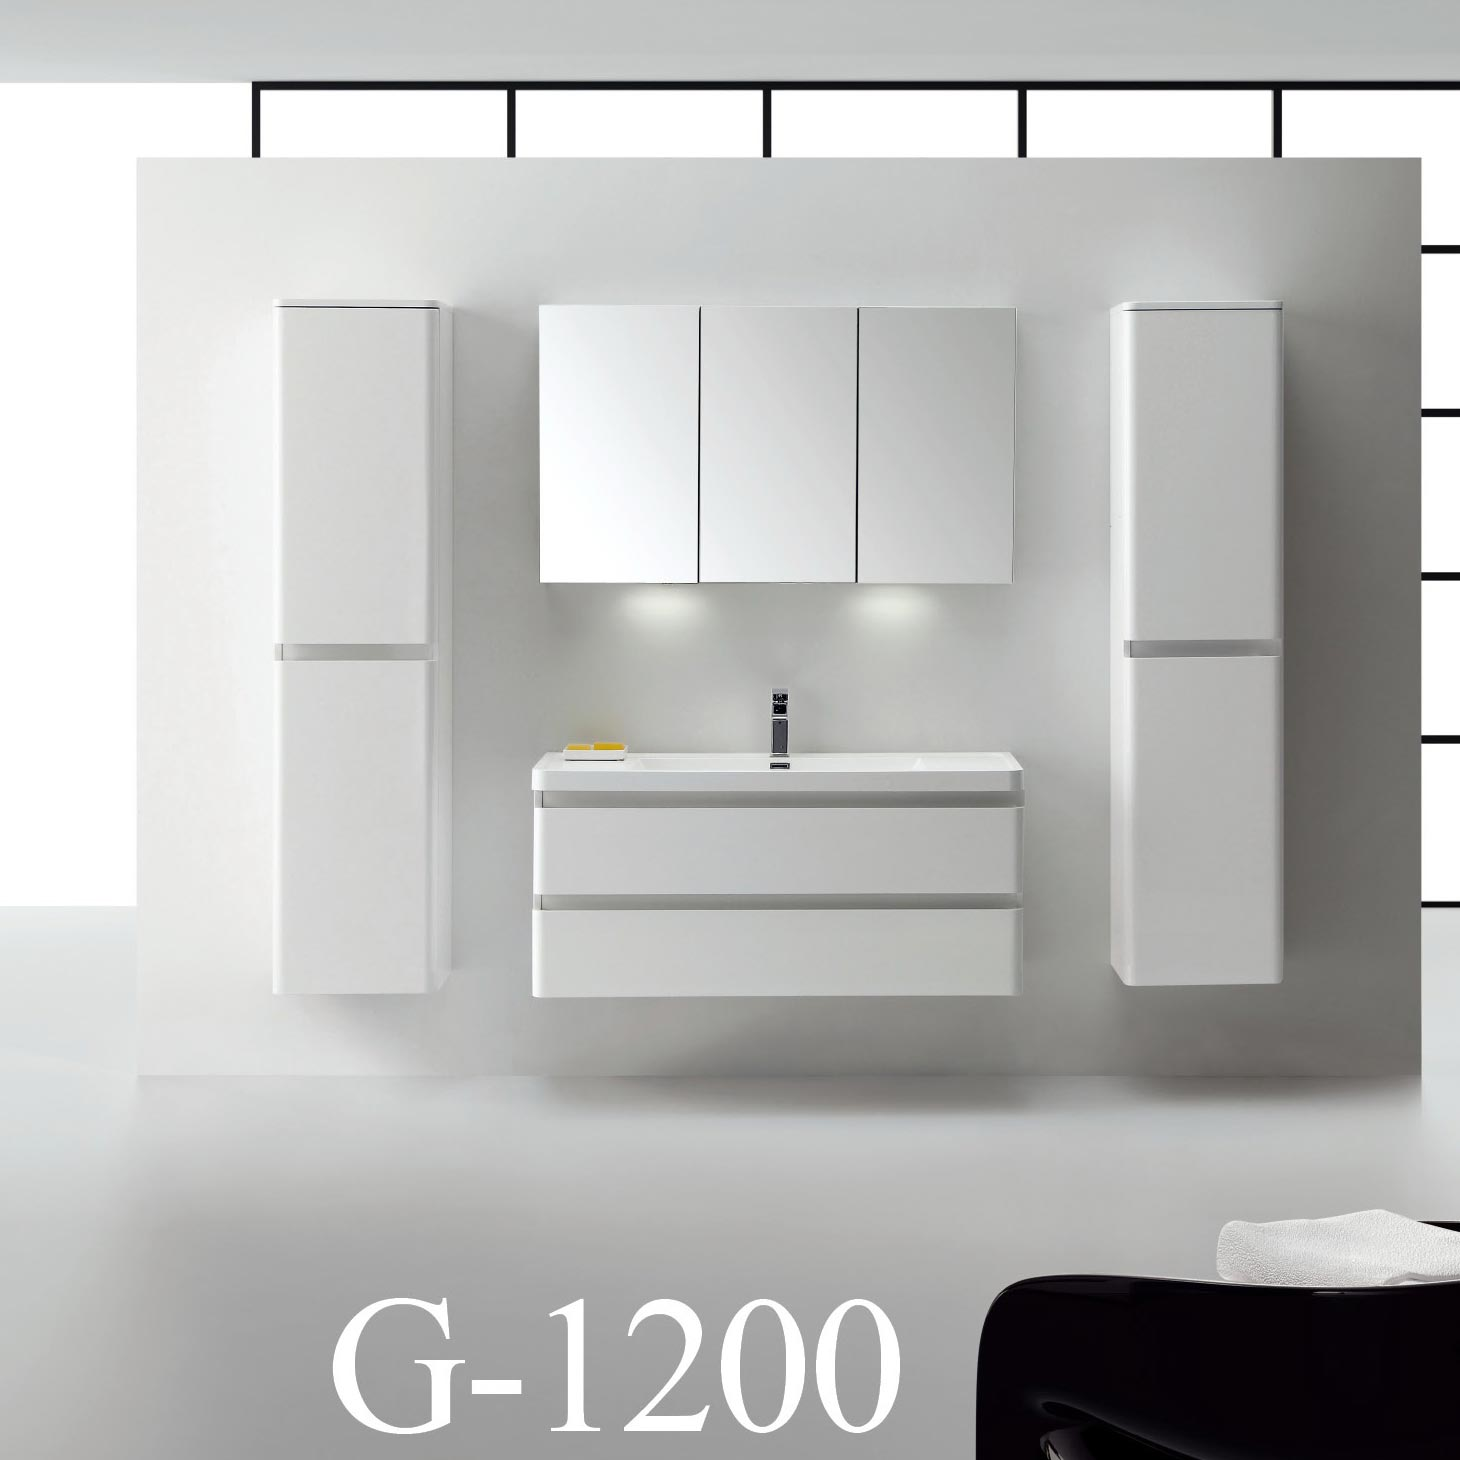 white wall mounted bathroom cabinets amaral 47 25 quot wall mount bathroom vanity high glossy white 24698 | 48 inch bathroom vanity white wall mount tn g1200 hgw 1